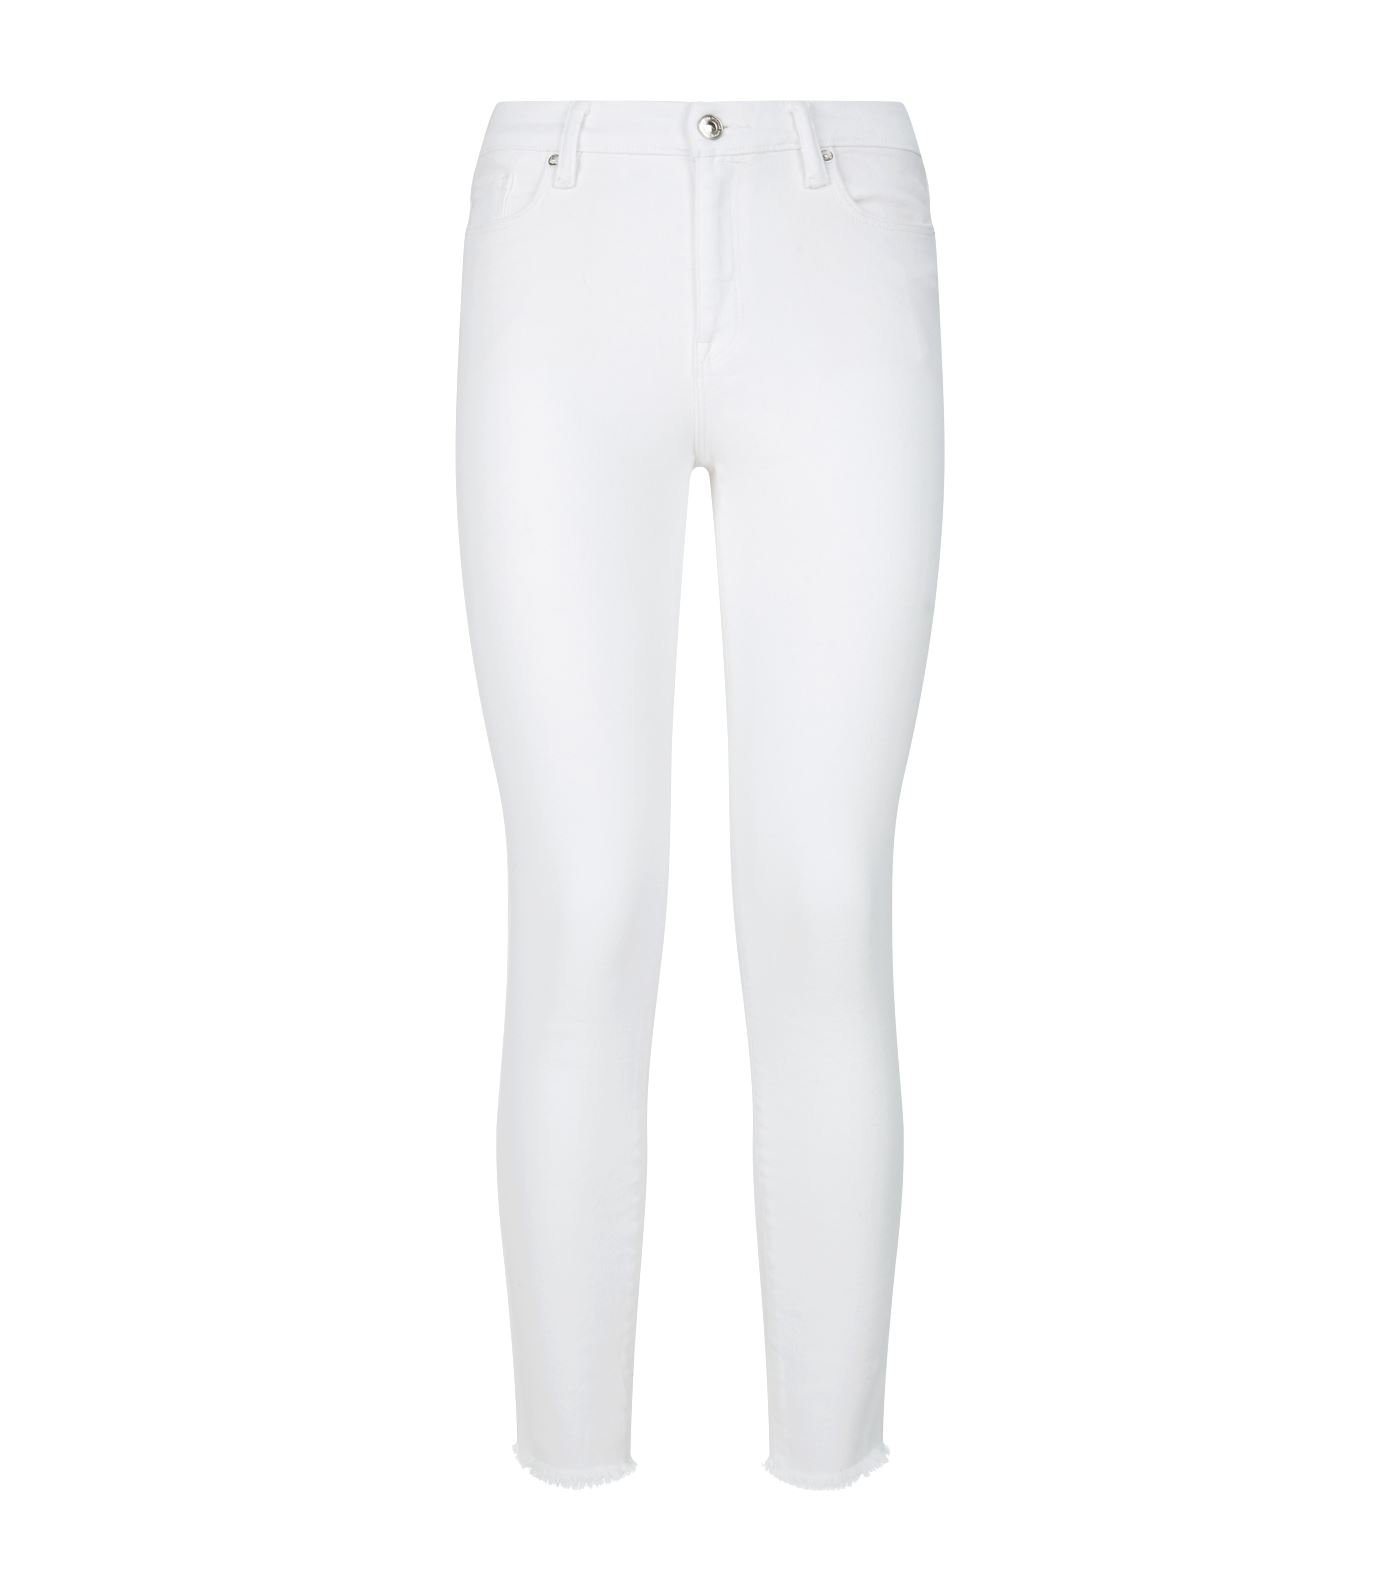 AllSaints - Let the AllSaints Grace skinny jeans be your style saviour this season. Crafted from thi